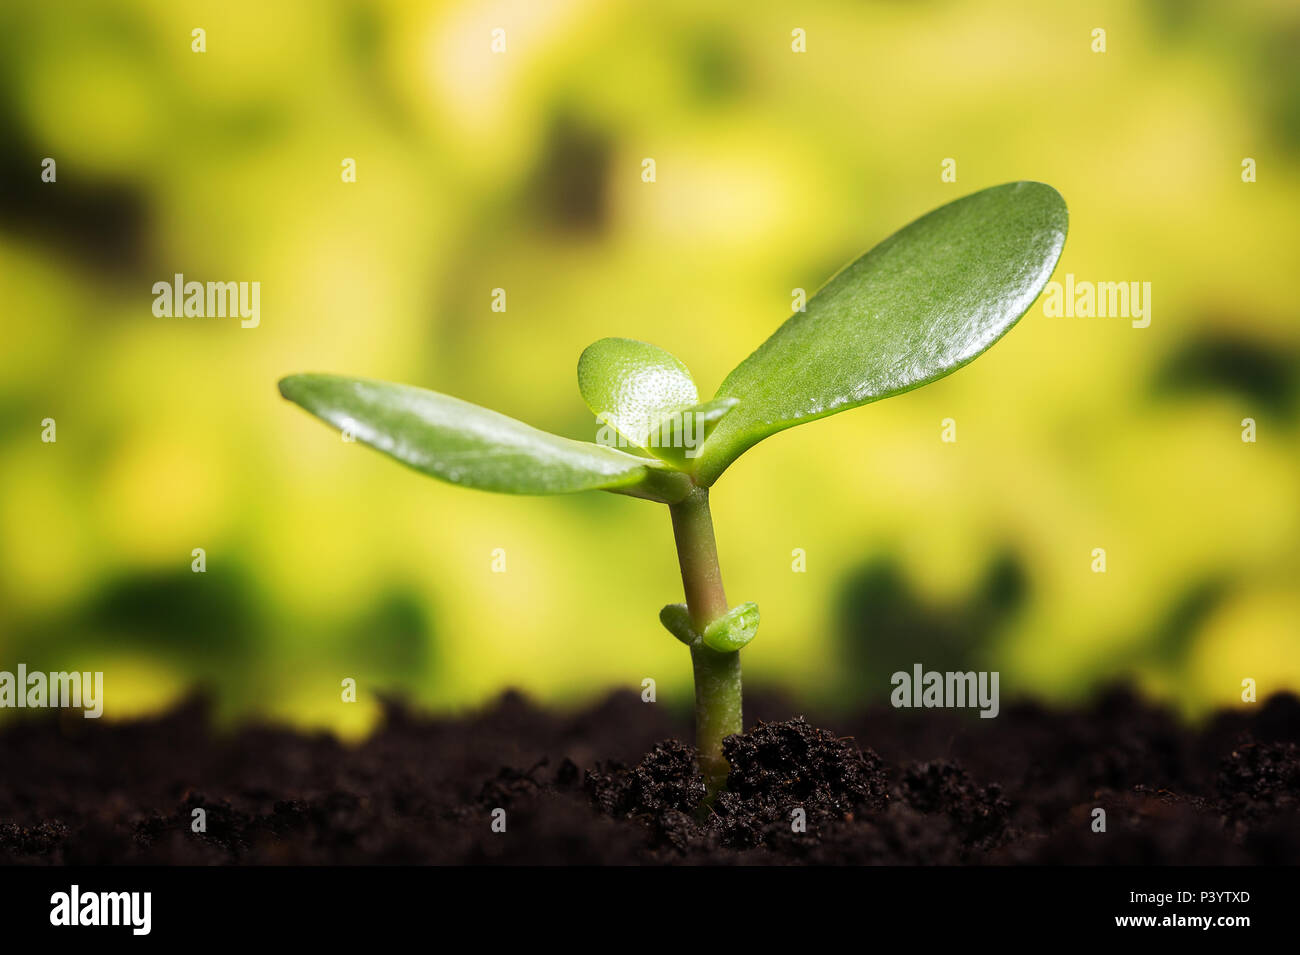 Growth symbol. Small plant growing up from the soil over defocused background with copy space - Stock Image